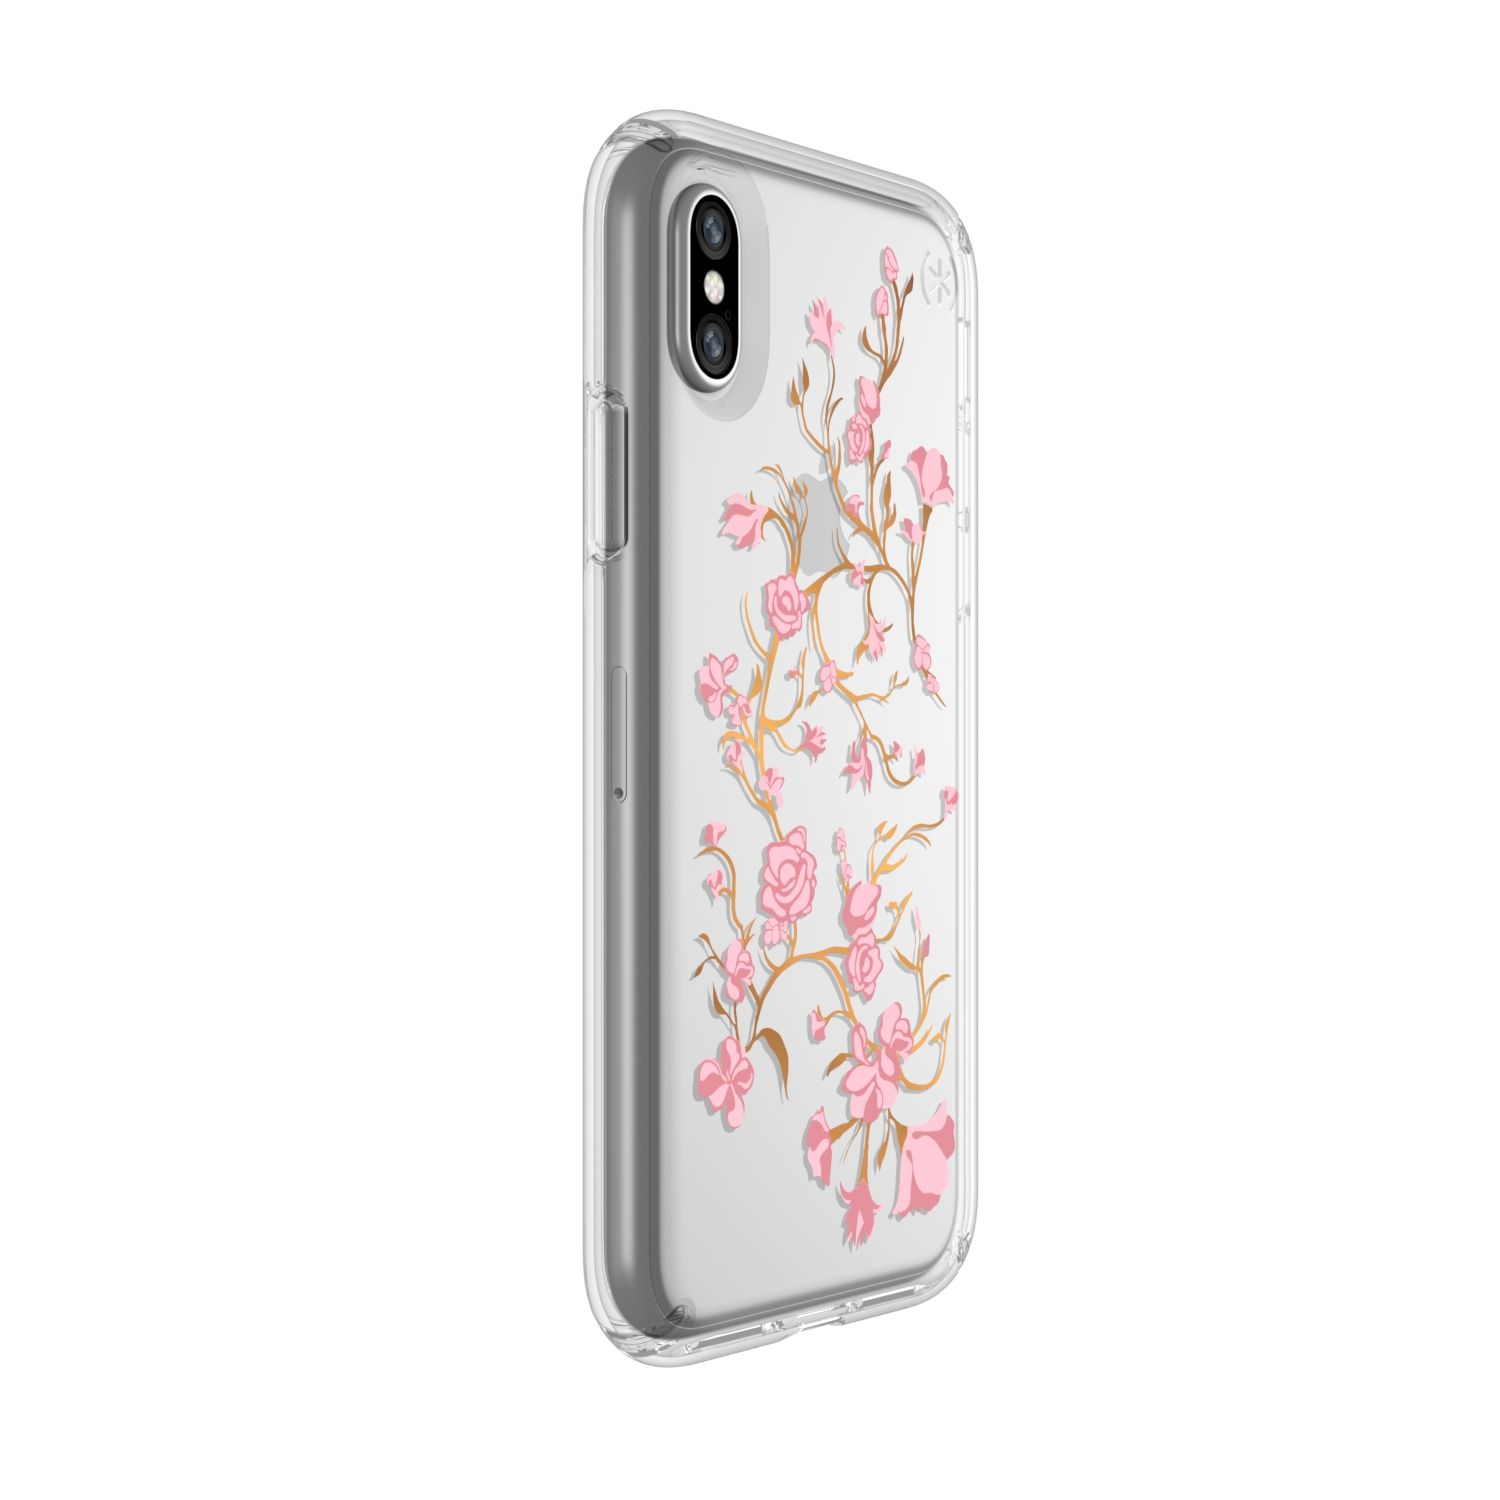 pick up 48736 8a2c2 Speck PRESIDIO CLEAR + PRINT IPHONE X CASES – Walmart Inventory ...